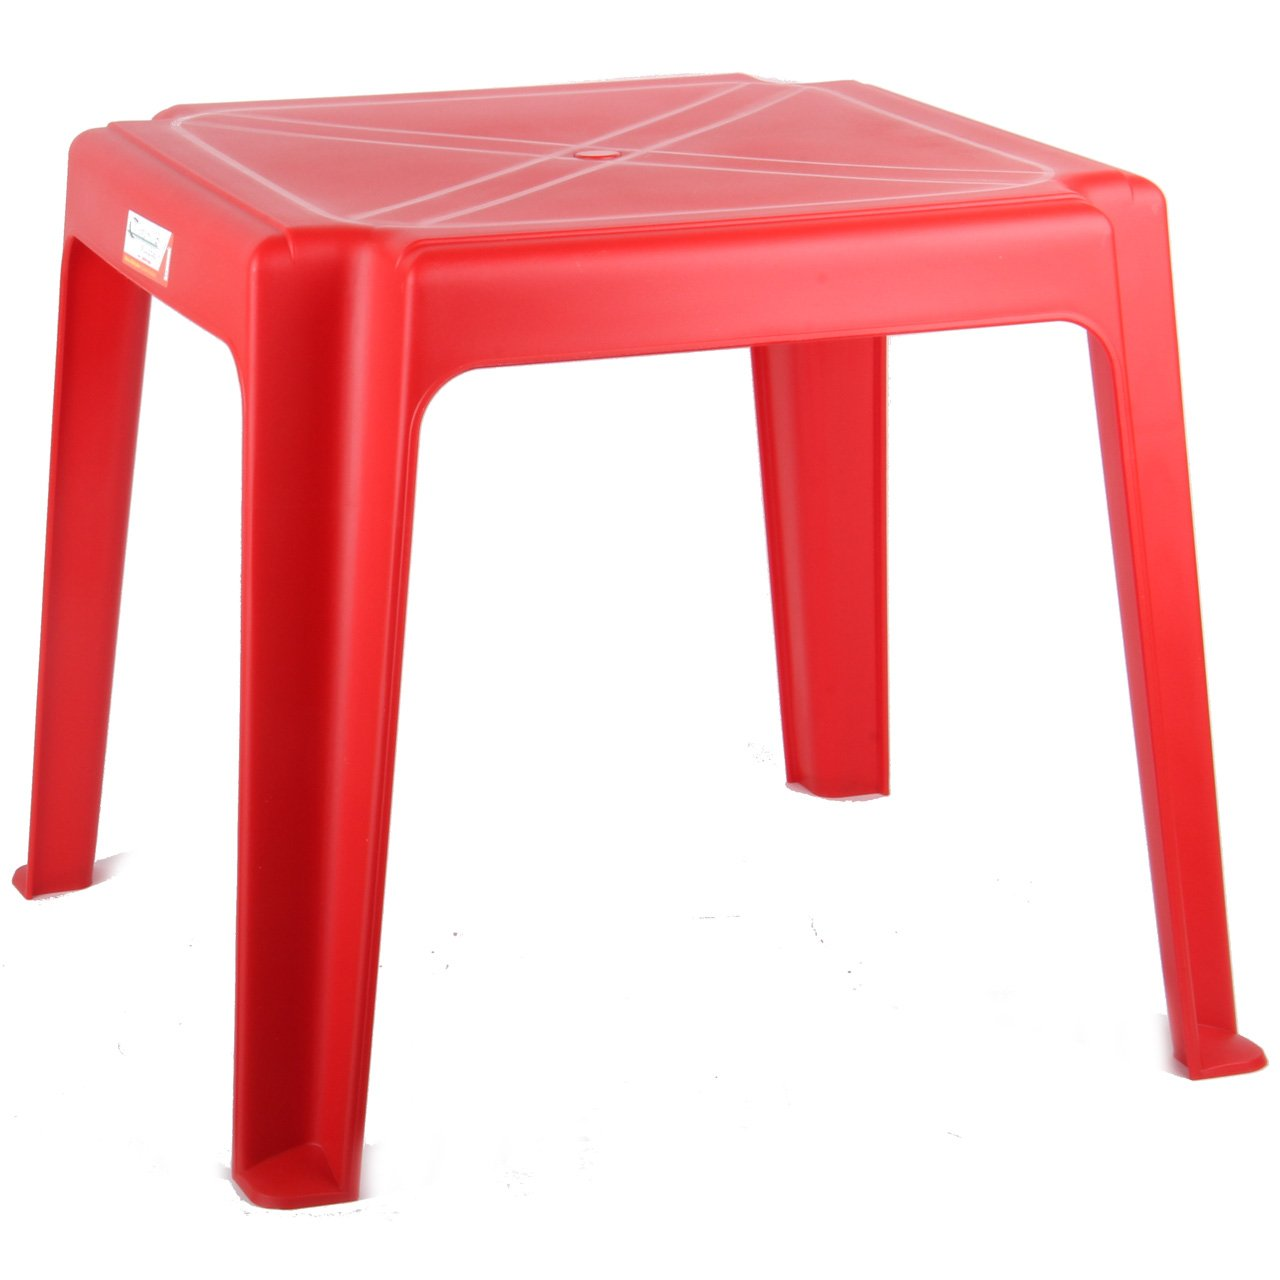 Comfort Time Kids Children Plastic Table Stackable Strong Suitable For Outdoor (Pink)